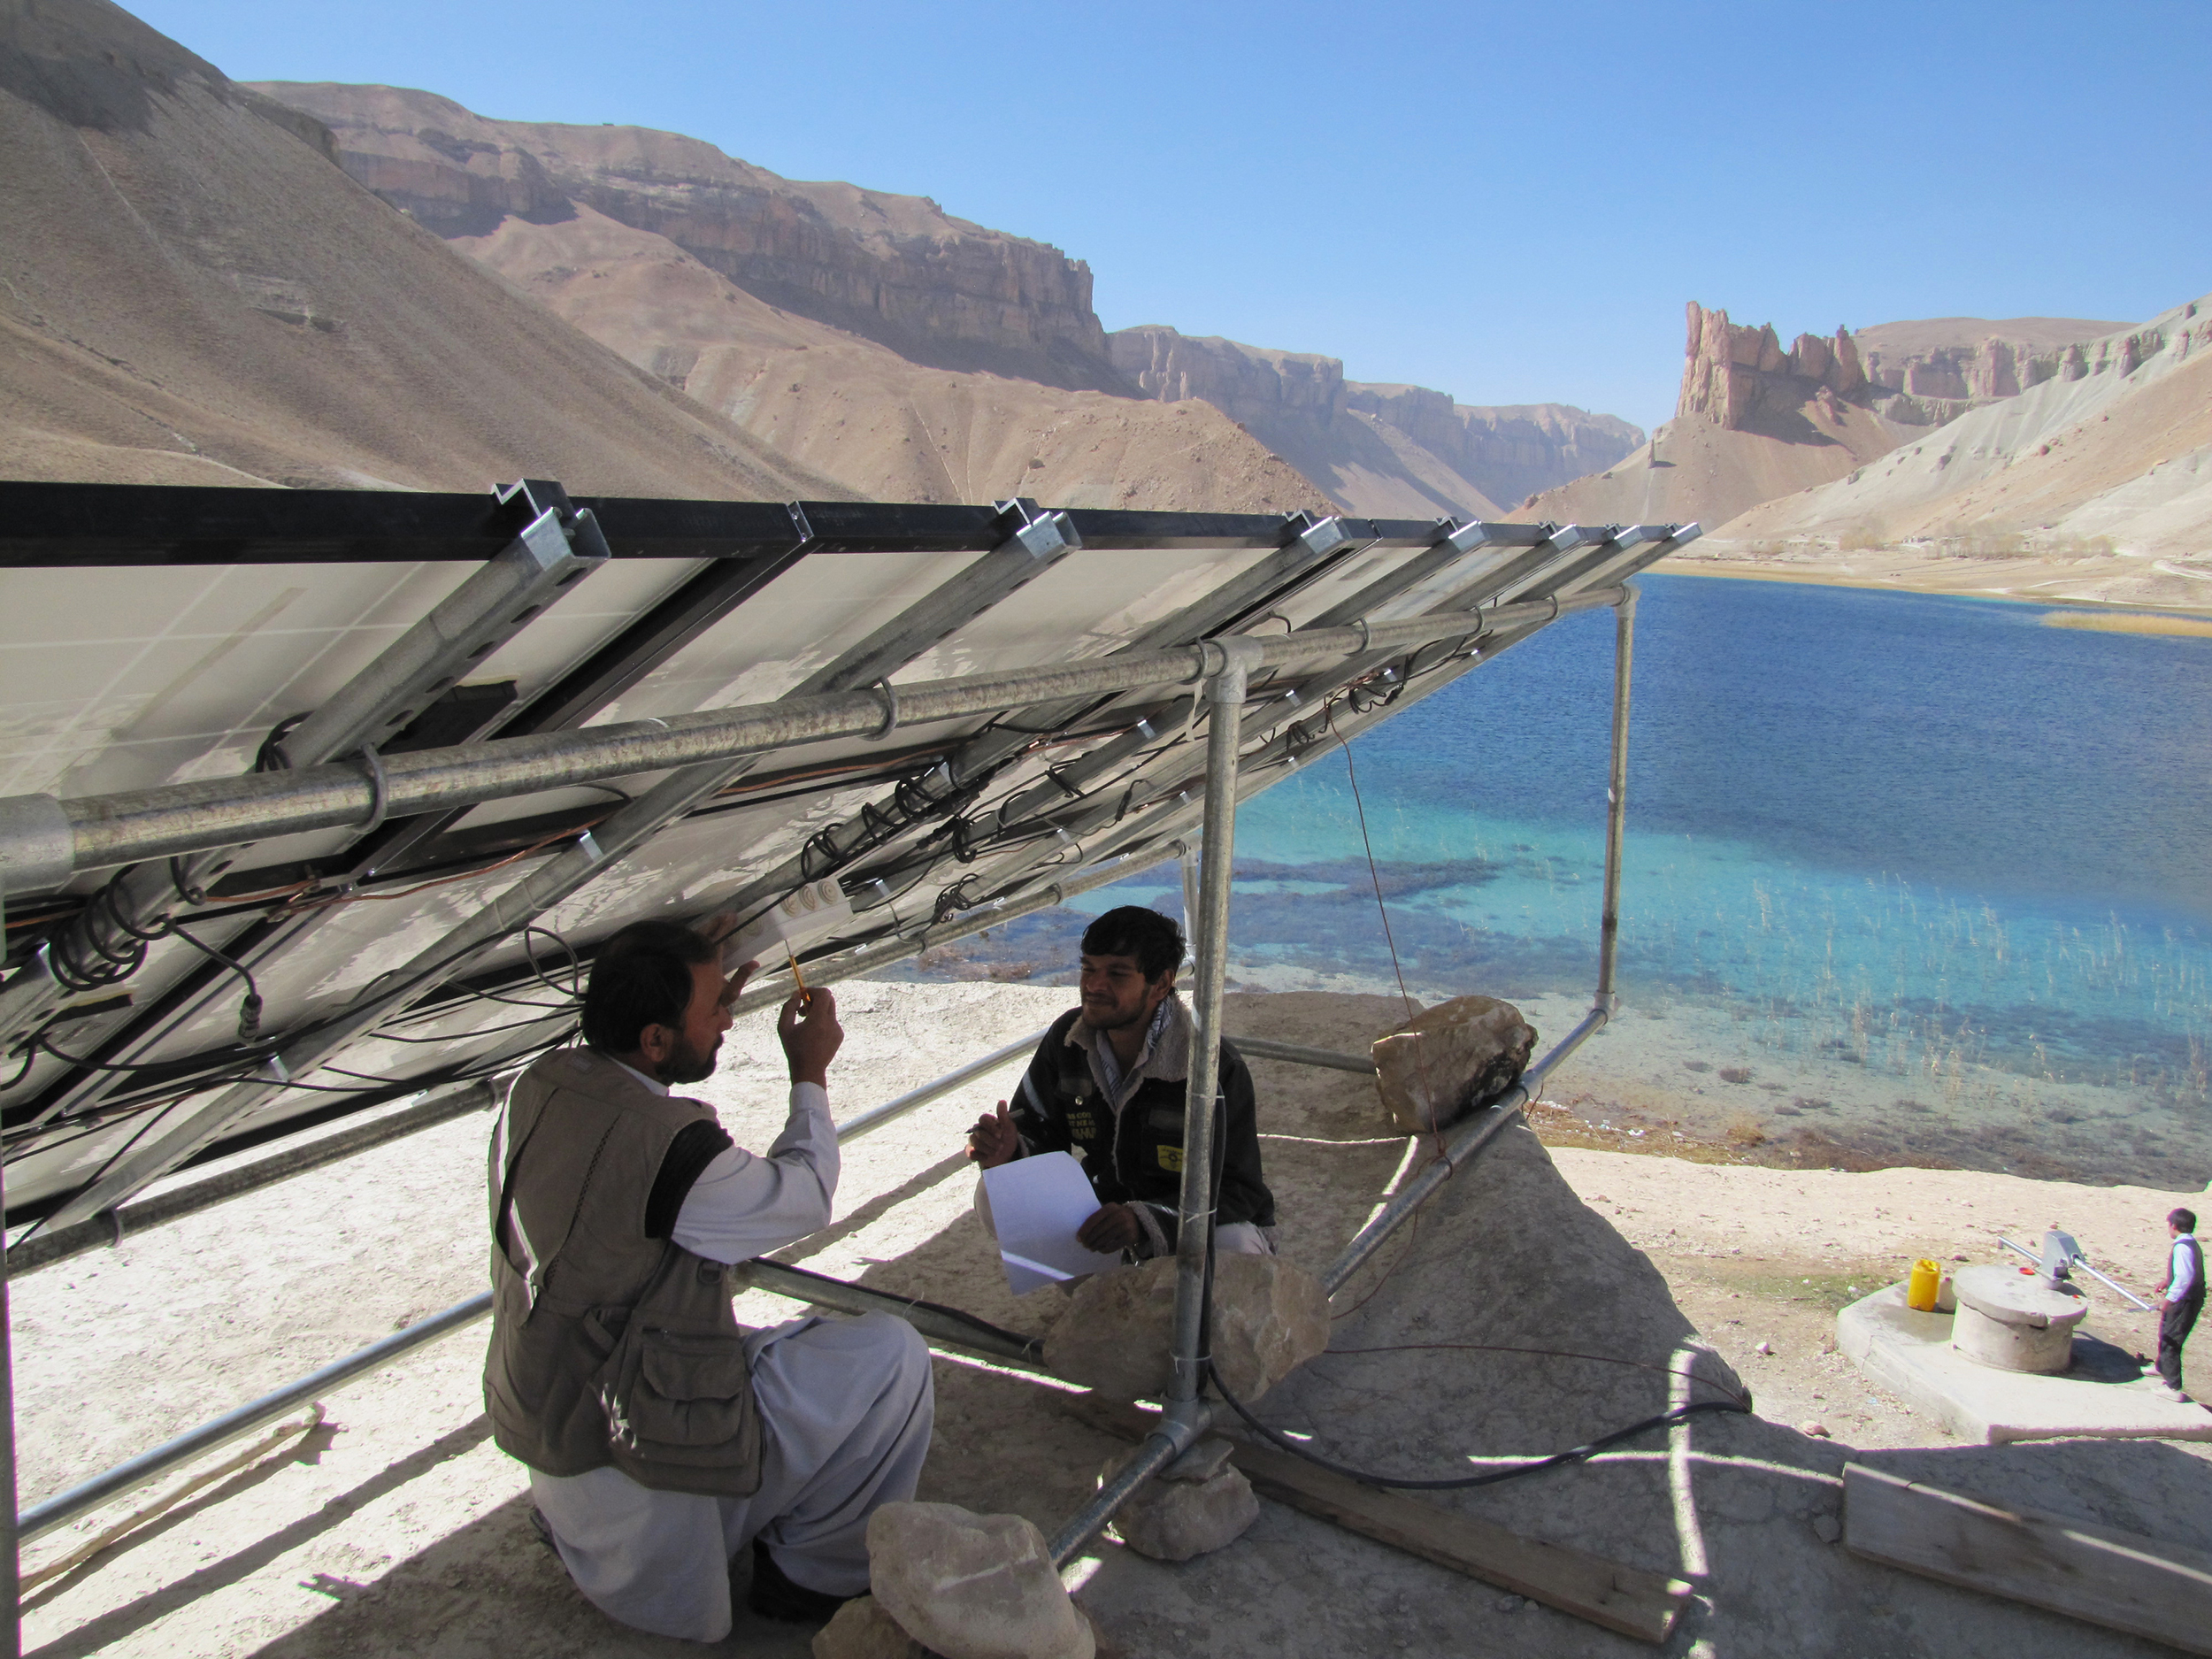 USAID is supporting the electrification of rural schools in Afghanistan, through projects like the Afghanistan Clean Energy Program (ACEP). ACEP created a 2 kW solar-powered system to provide power to the Shaheed Mahmoodi High School in Band-e Amir National Park in Bamiyan Province, benefitting its 621 male and female students. Here Afghan technicians are finishing installation and testing of the solar array. Photo credit: Robert Foster, Winrock International.